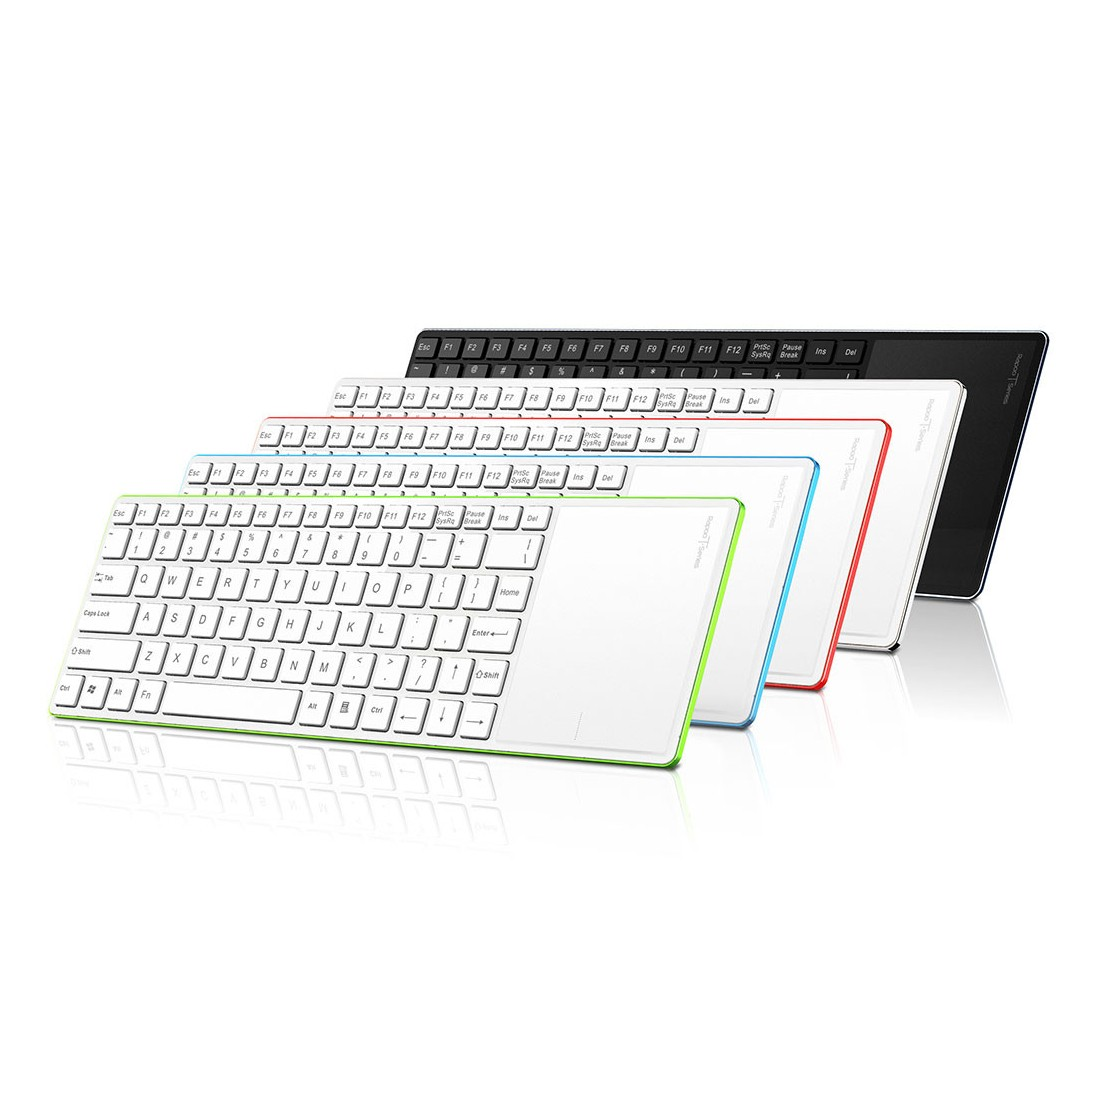 Rapoo's Latest Wireless Keyboard Has a Touchpad with a